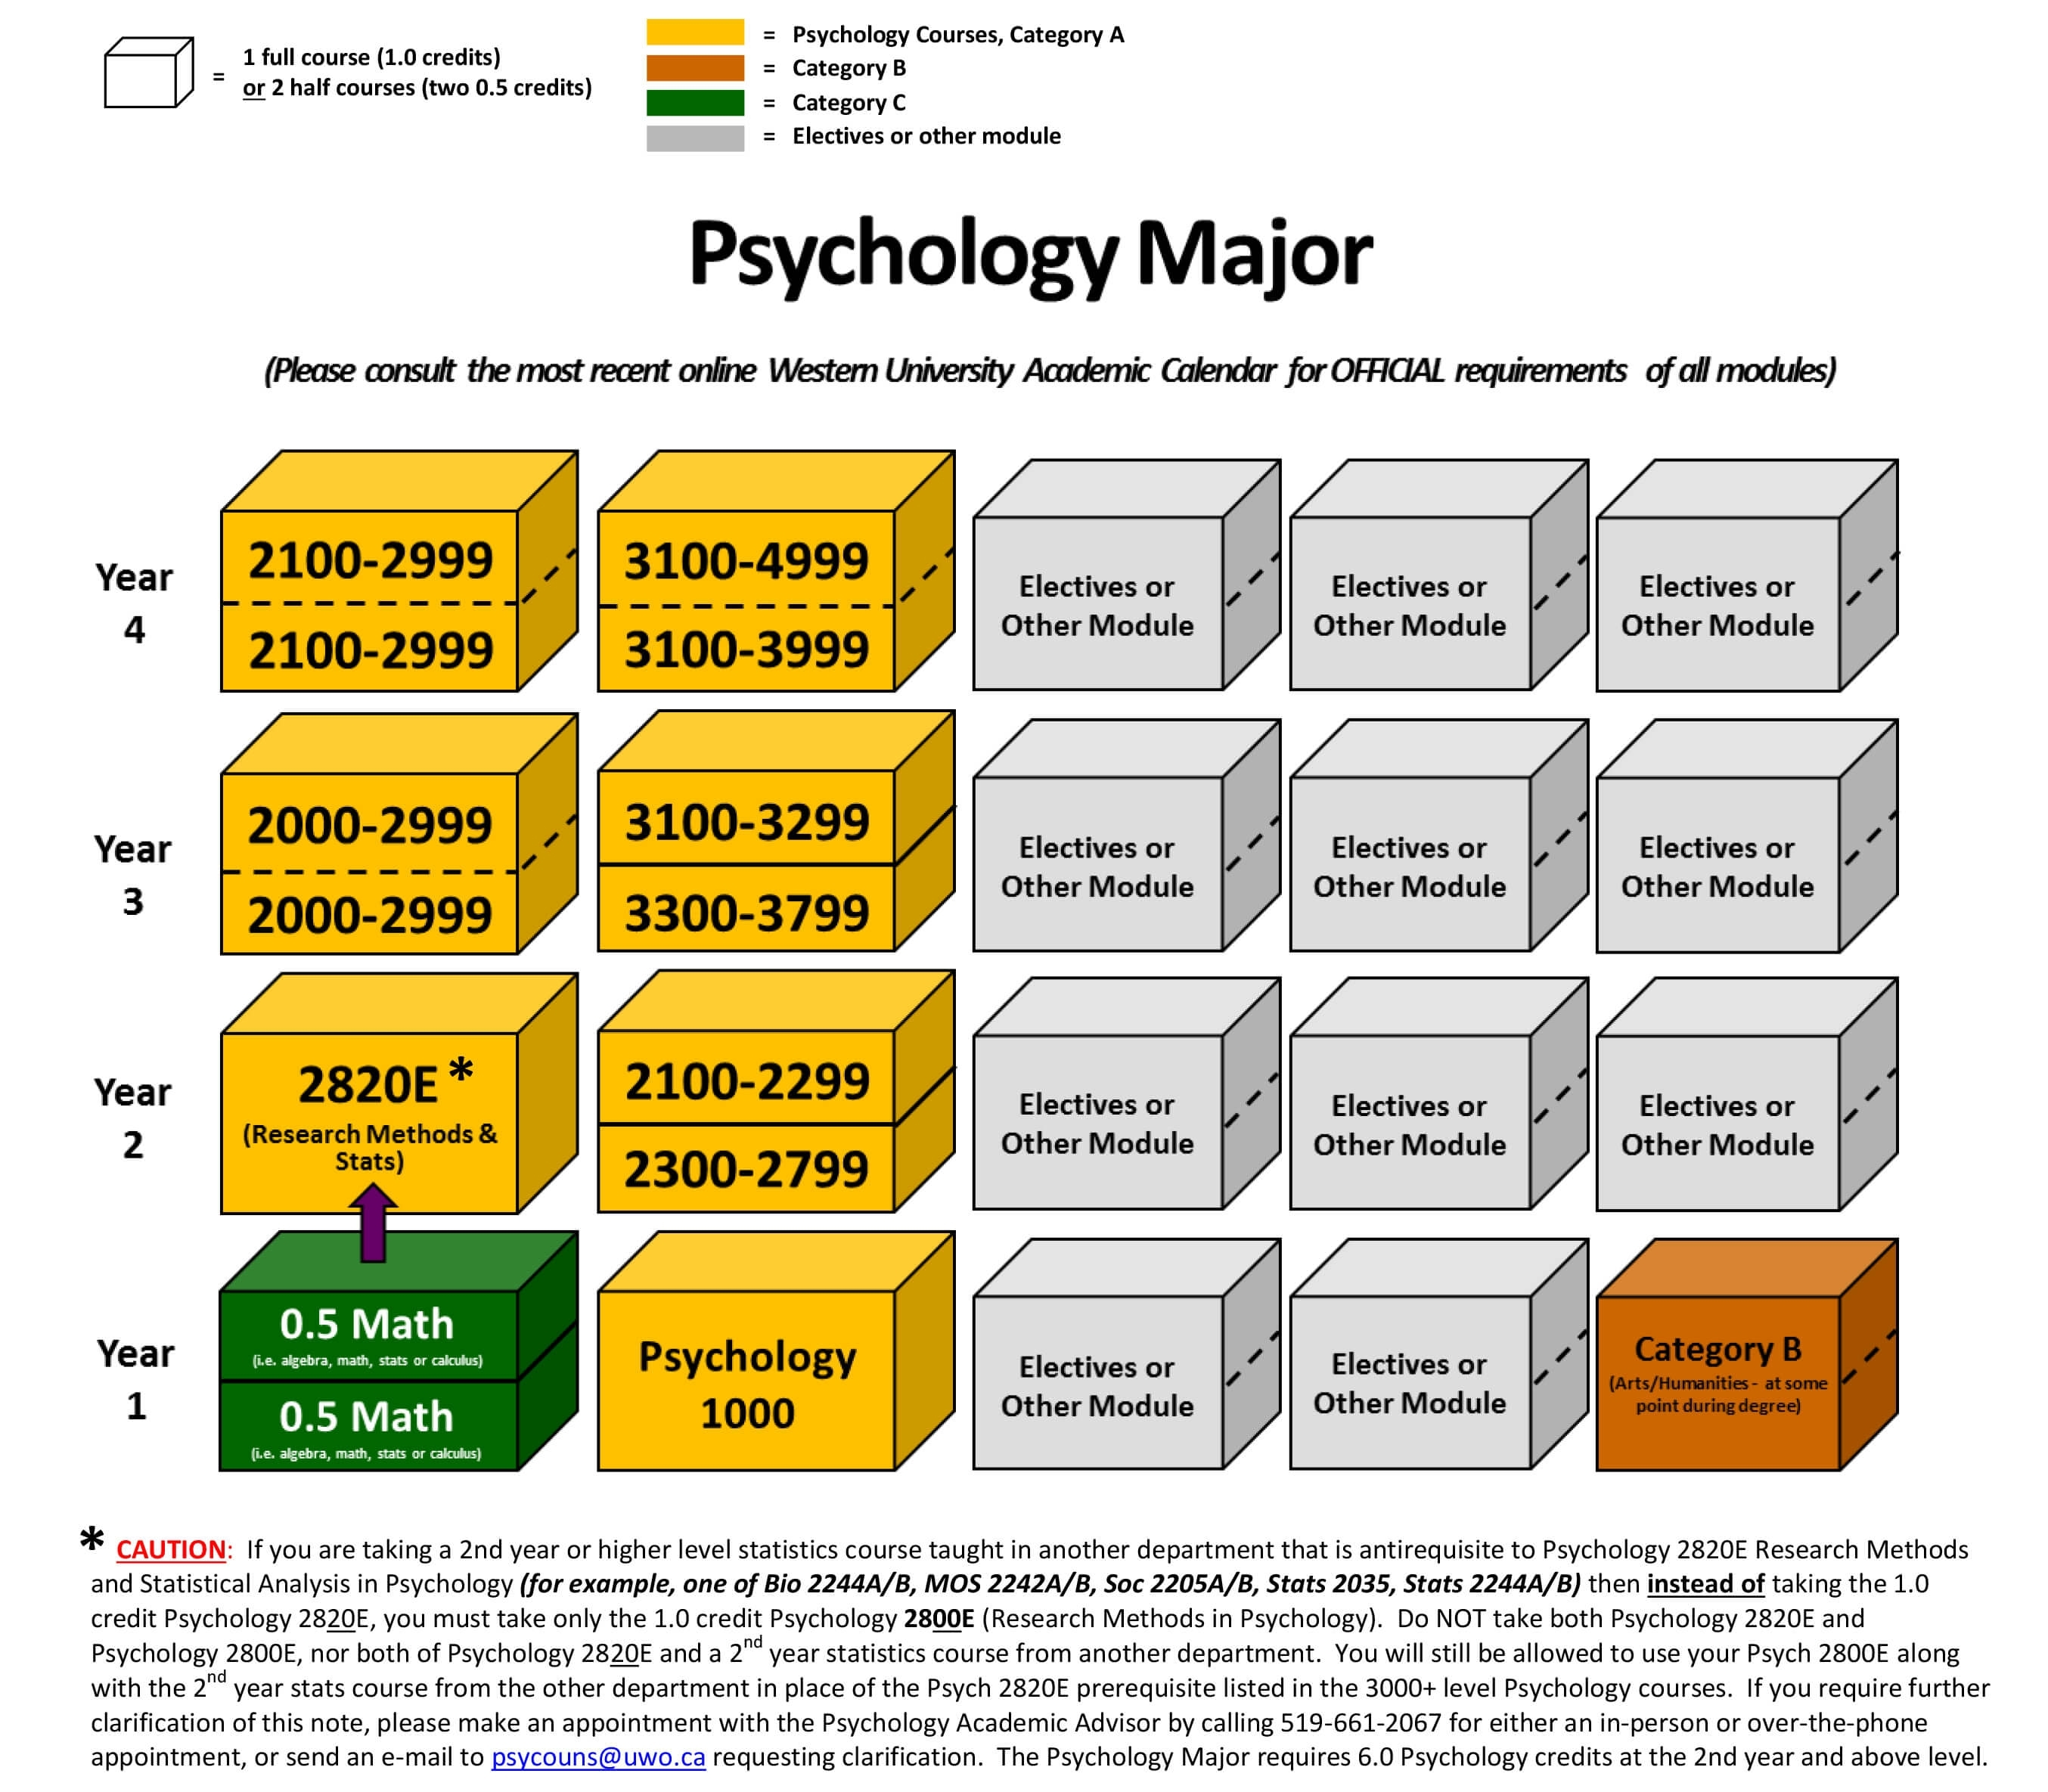 Major In Psychology - Psychology - Western University